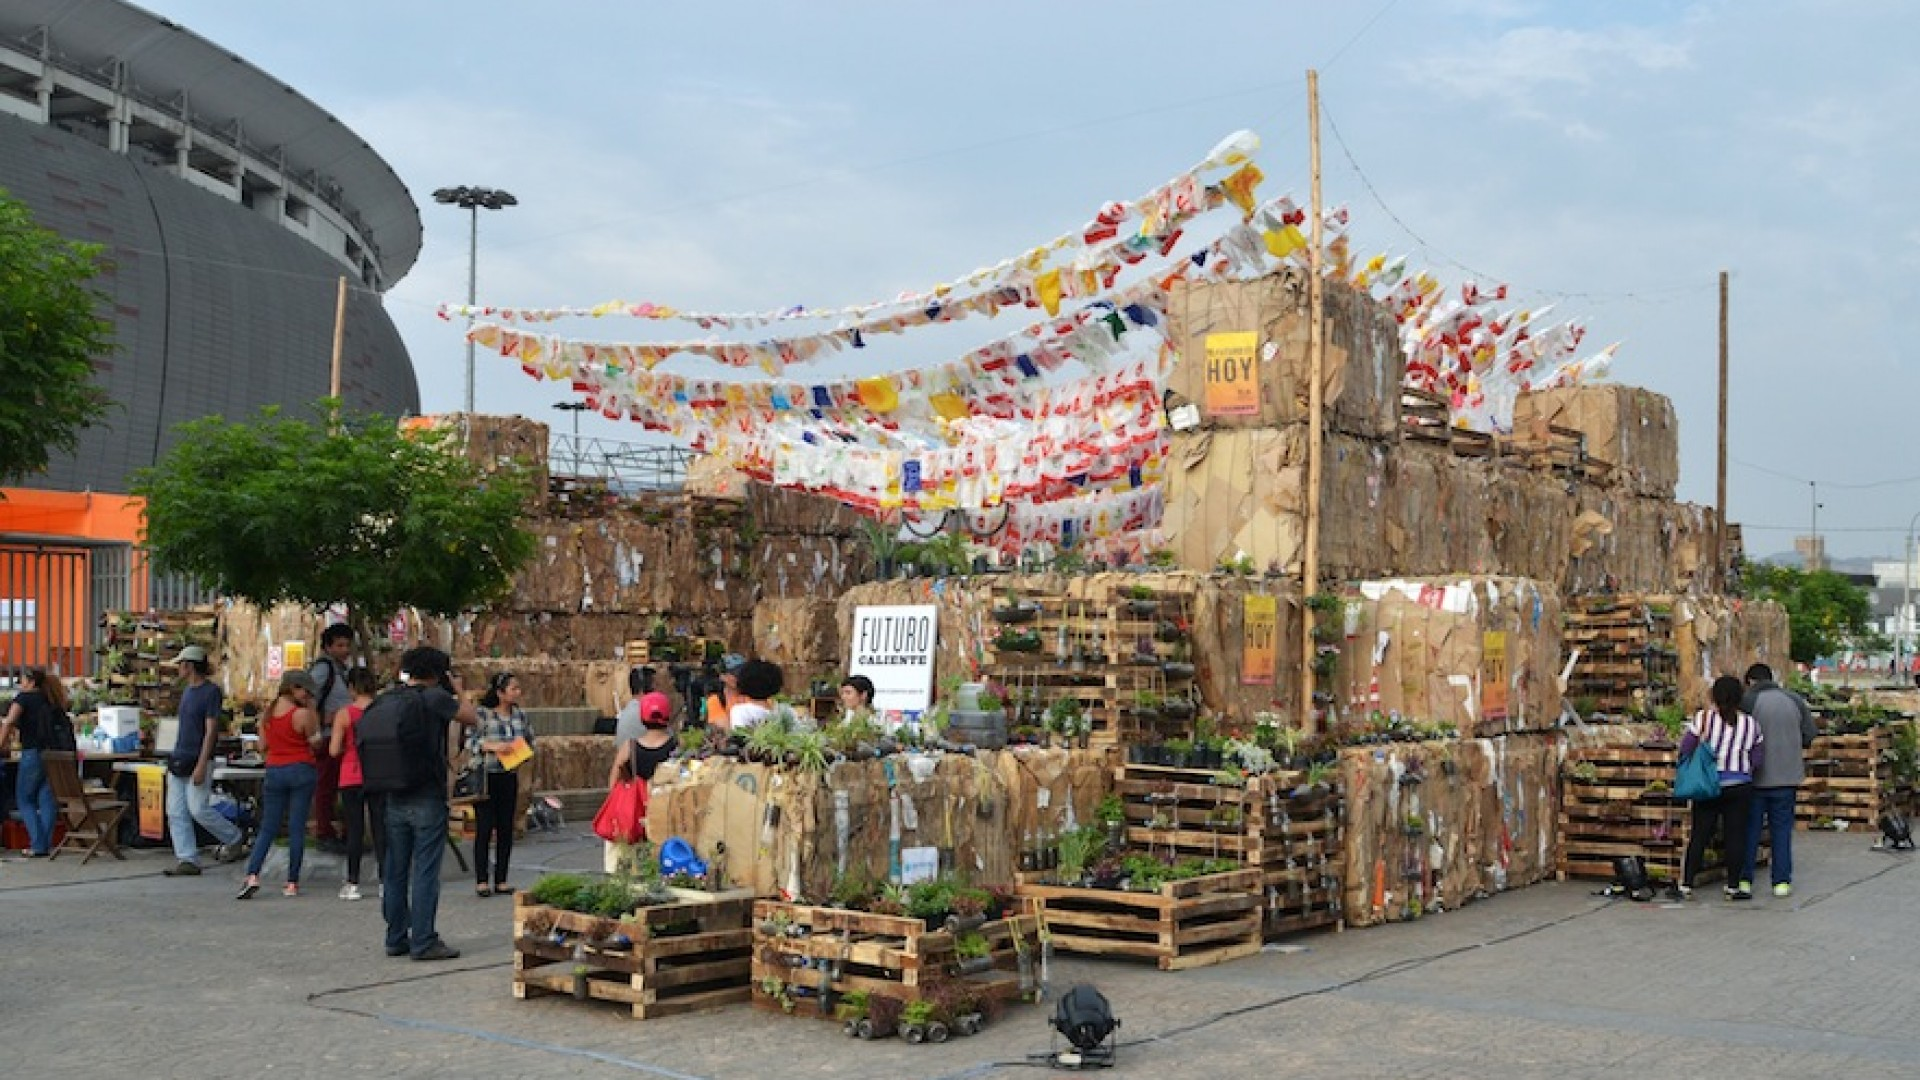 Art and culture are committed for COP21